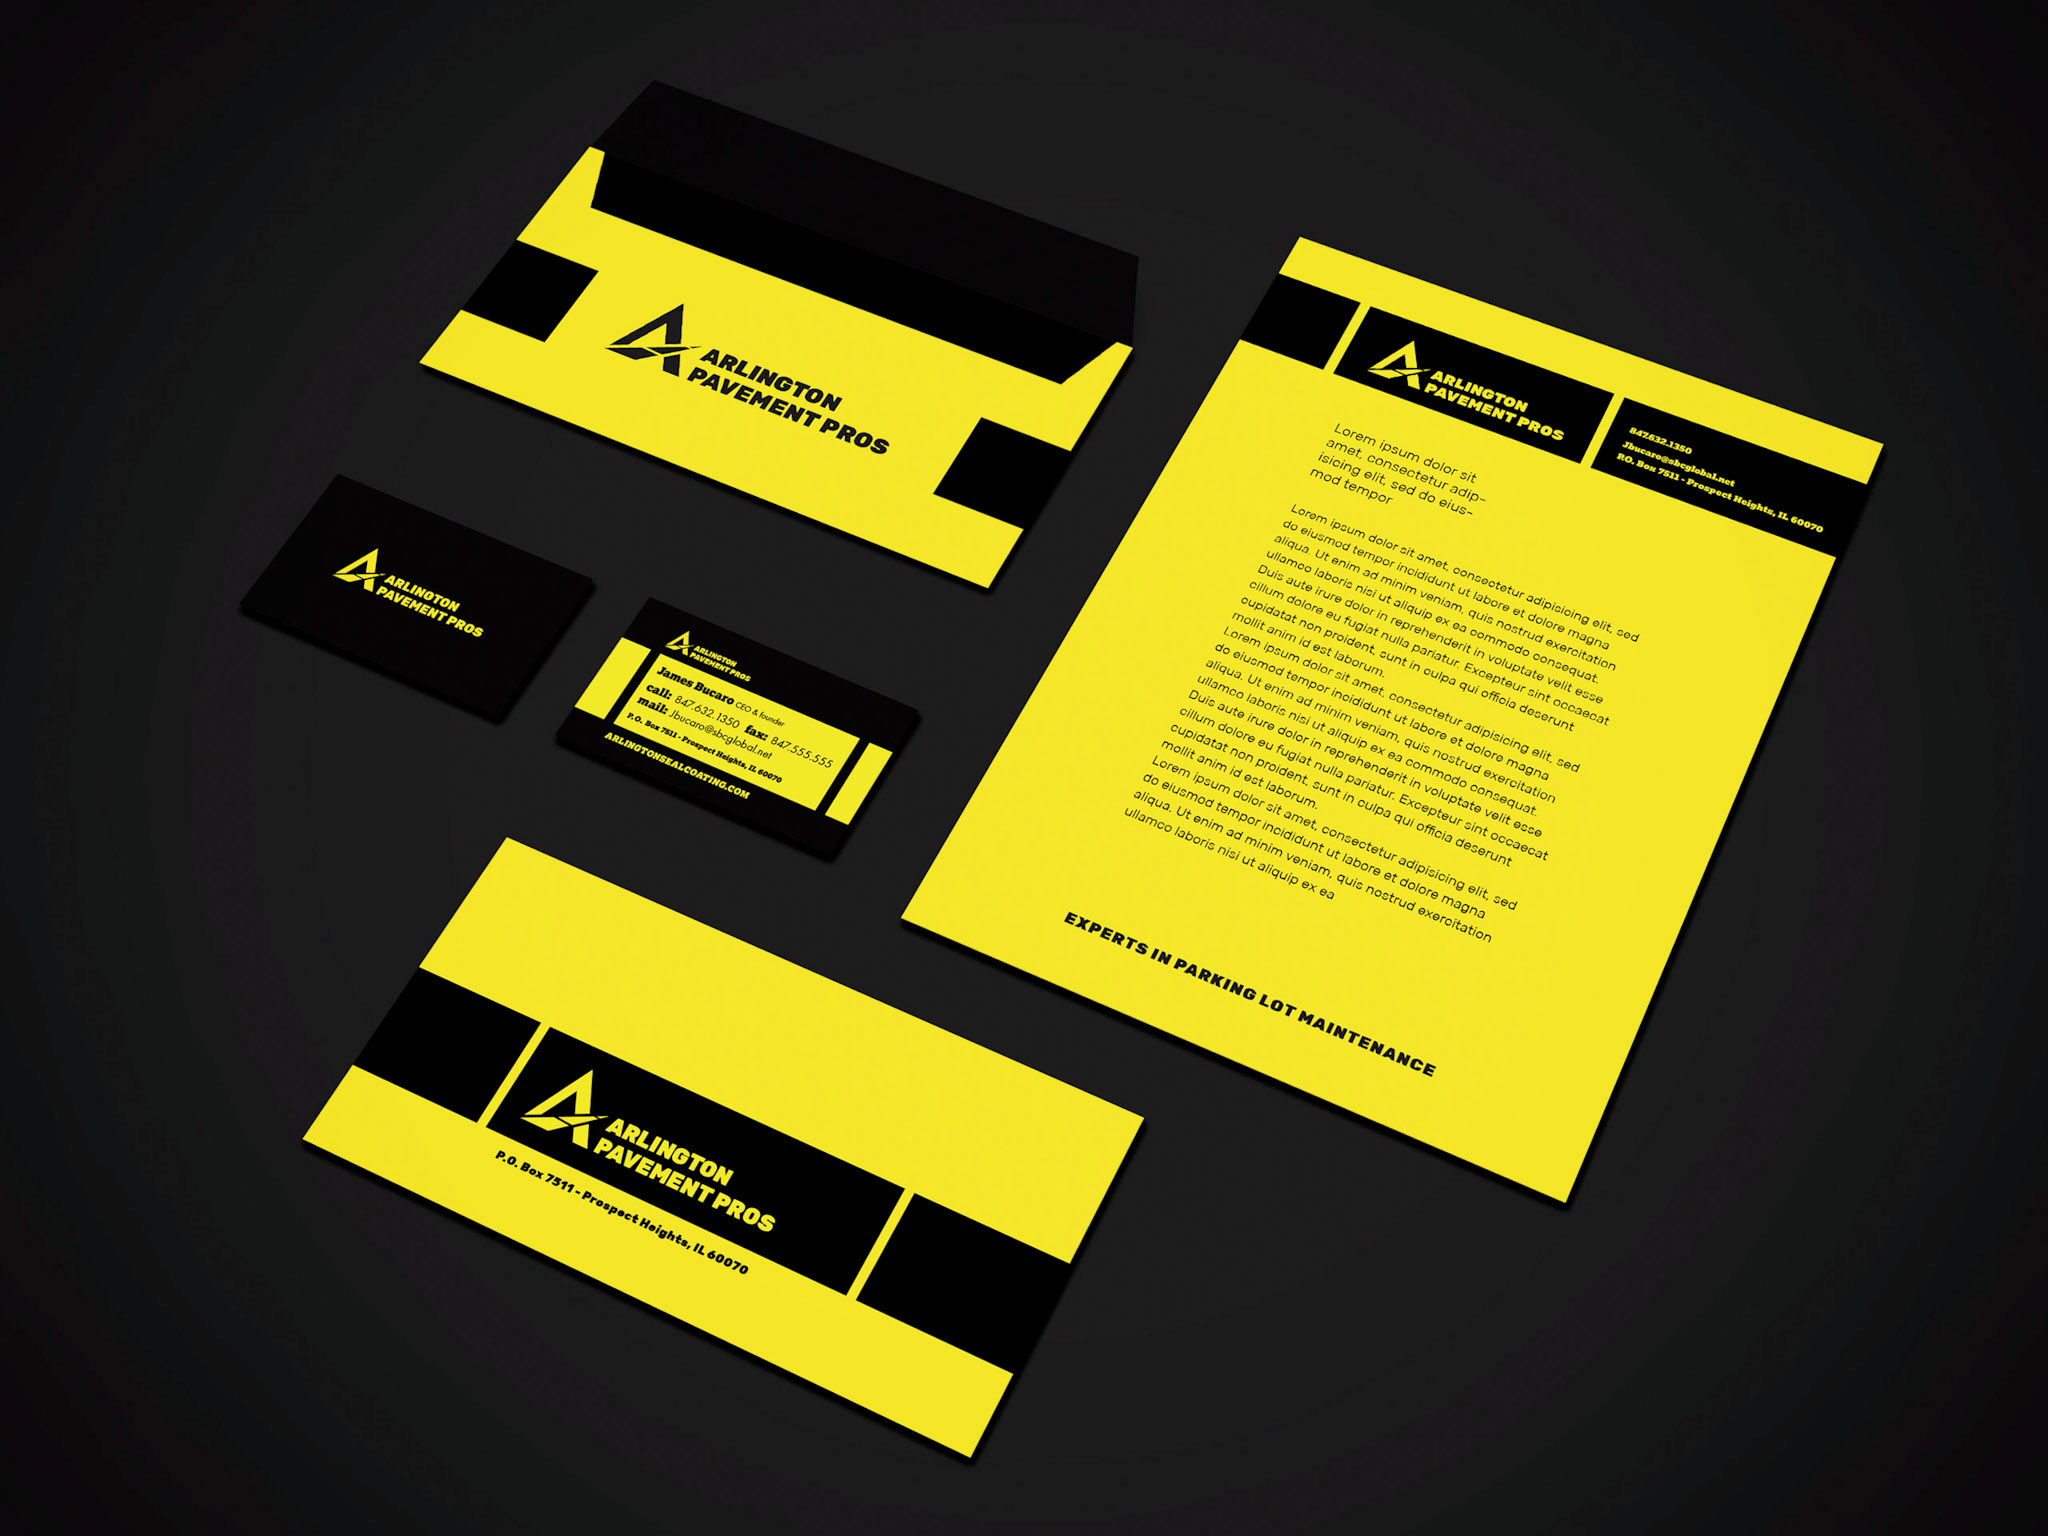 This shows the brand stationery, including business cards, letterhead, and envelope.